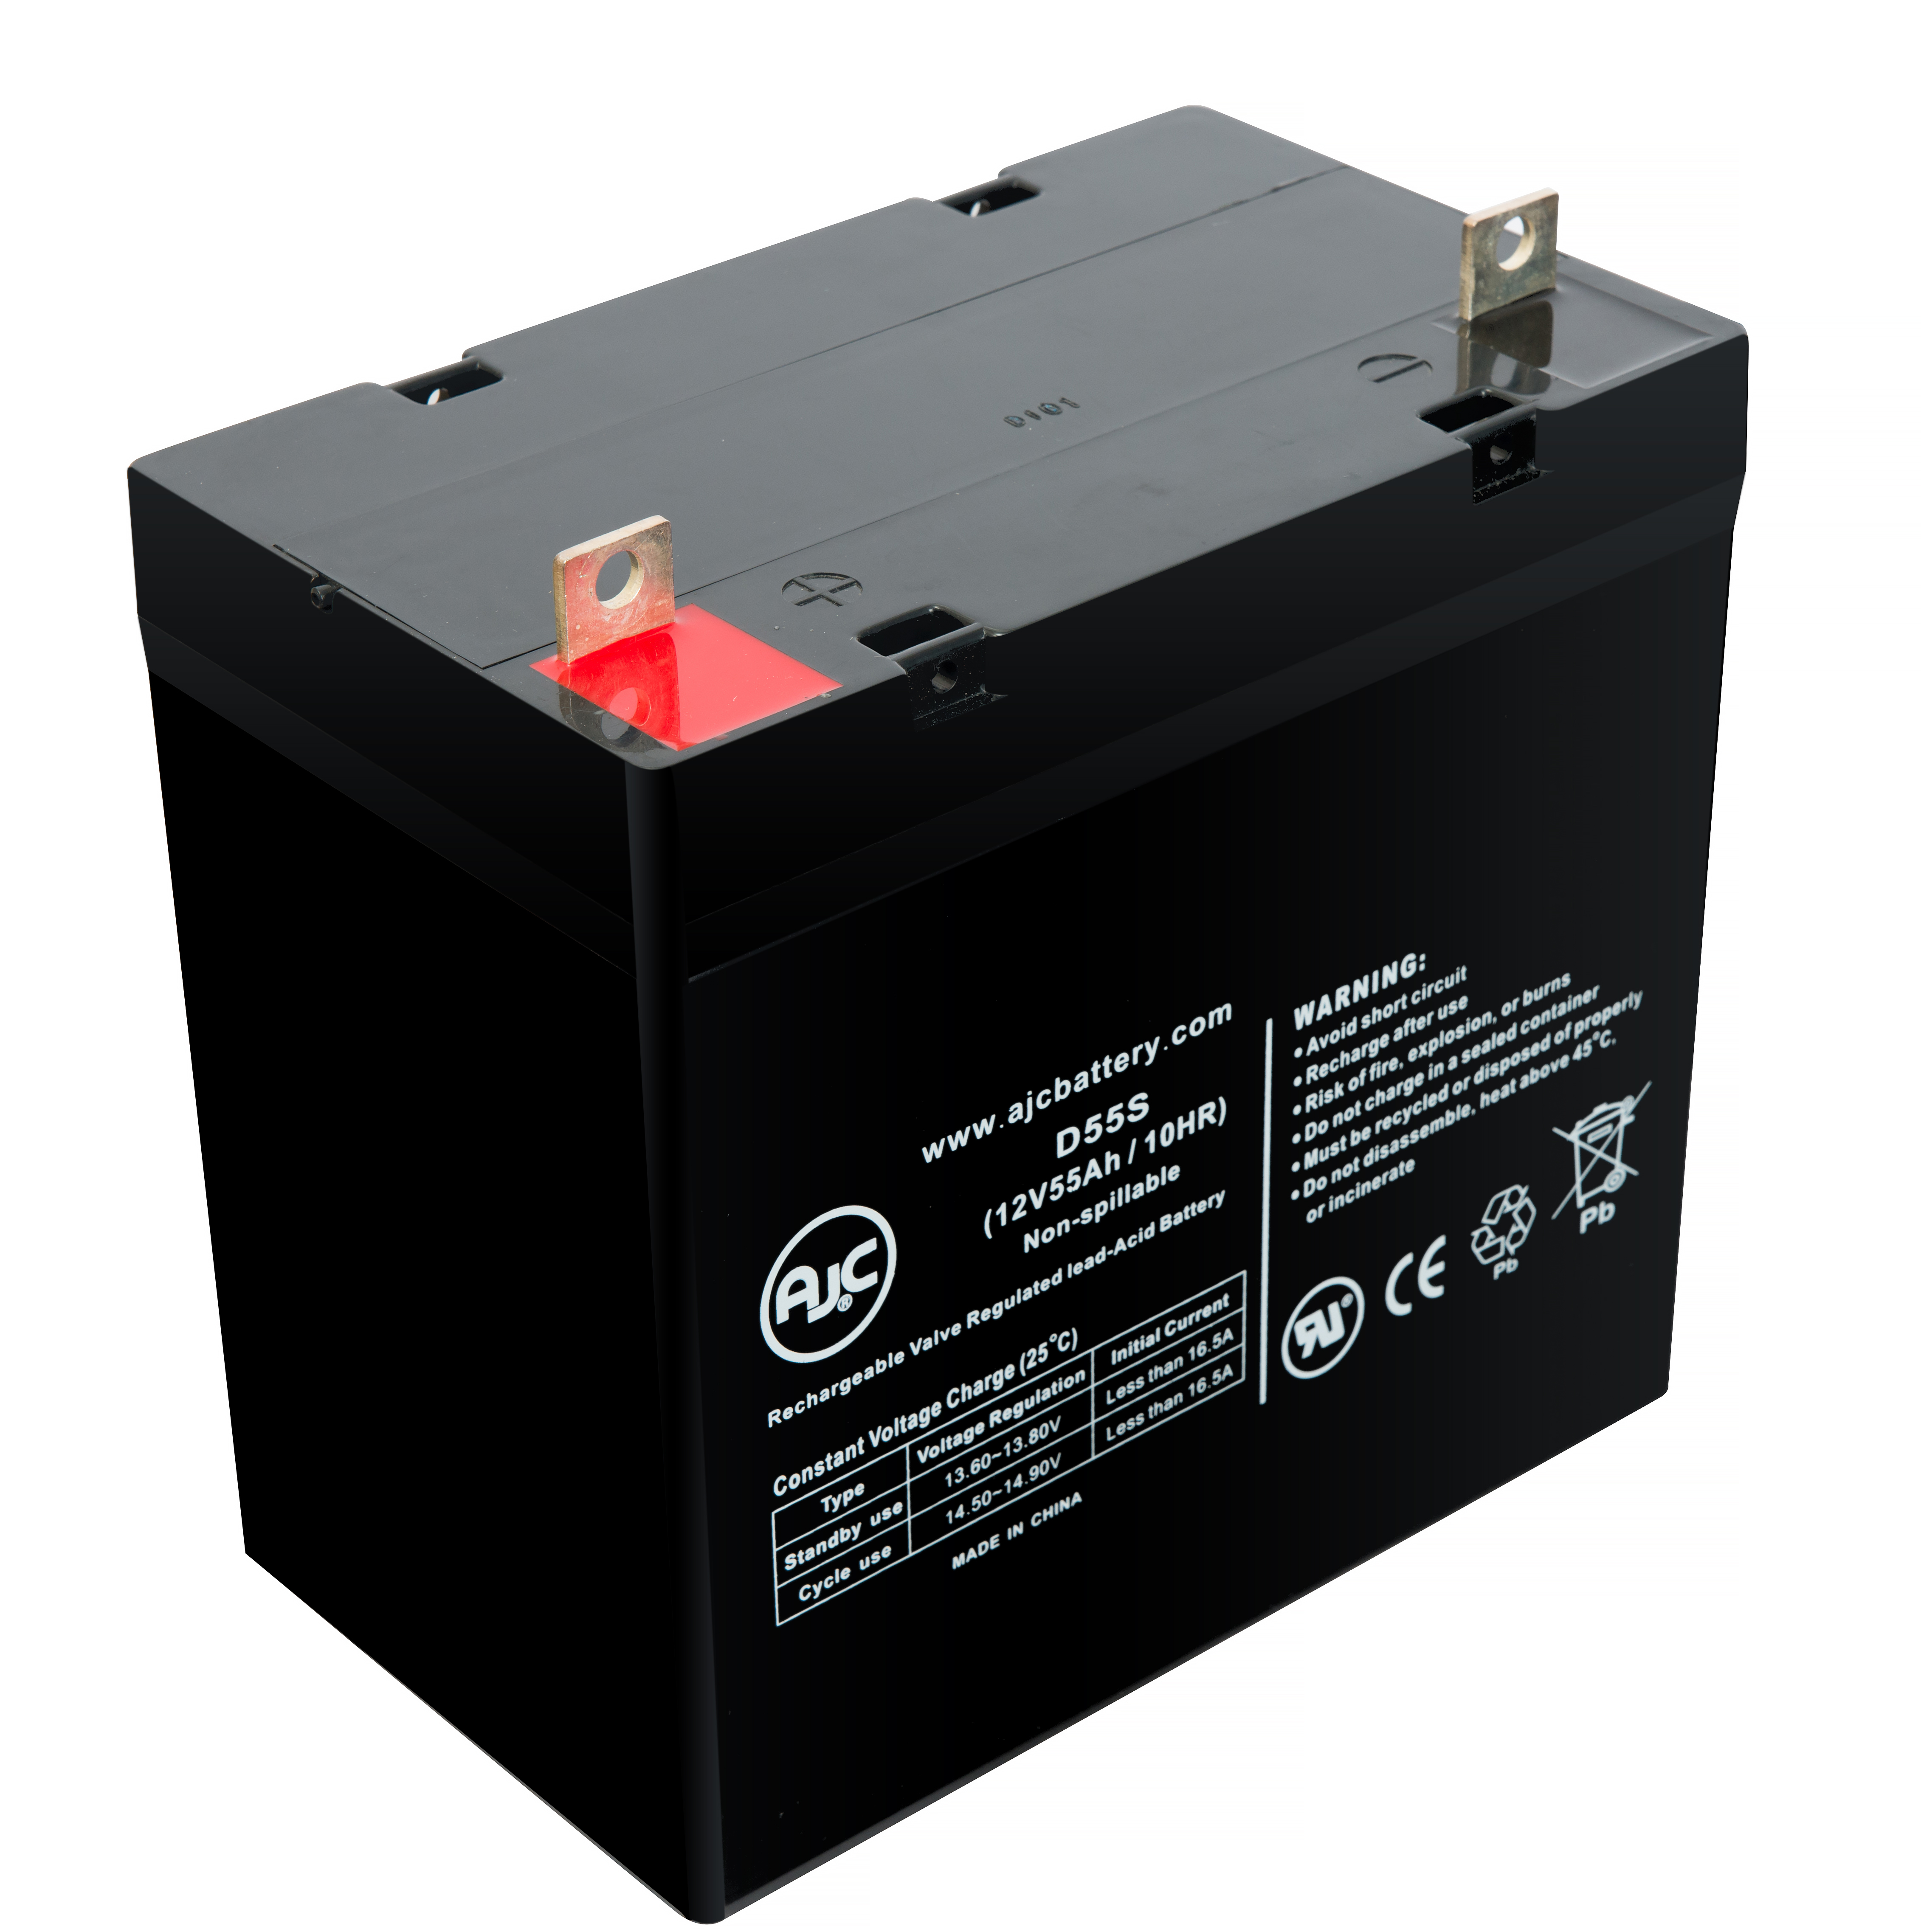 Dalton Tacahe Heavy Duty PC1450 12V 55Ah Wheelchair Battery - This is an AJC Brand® Replacement